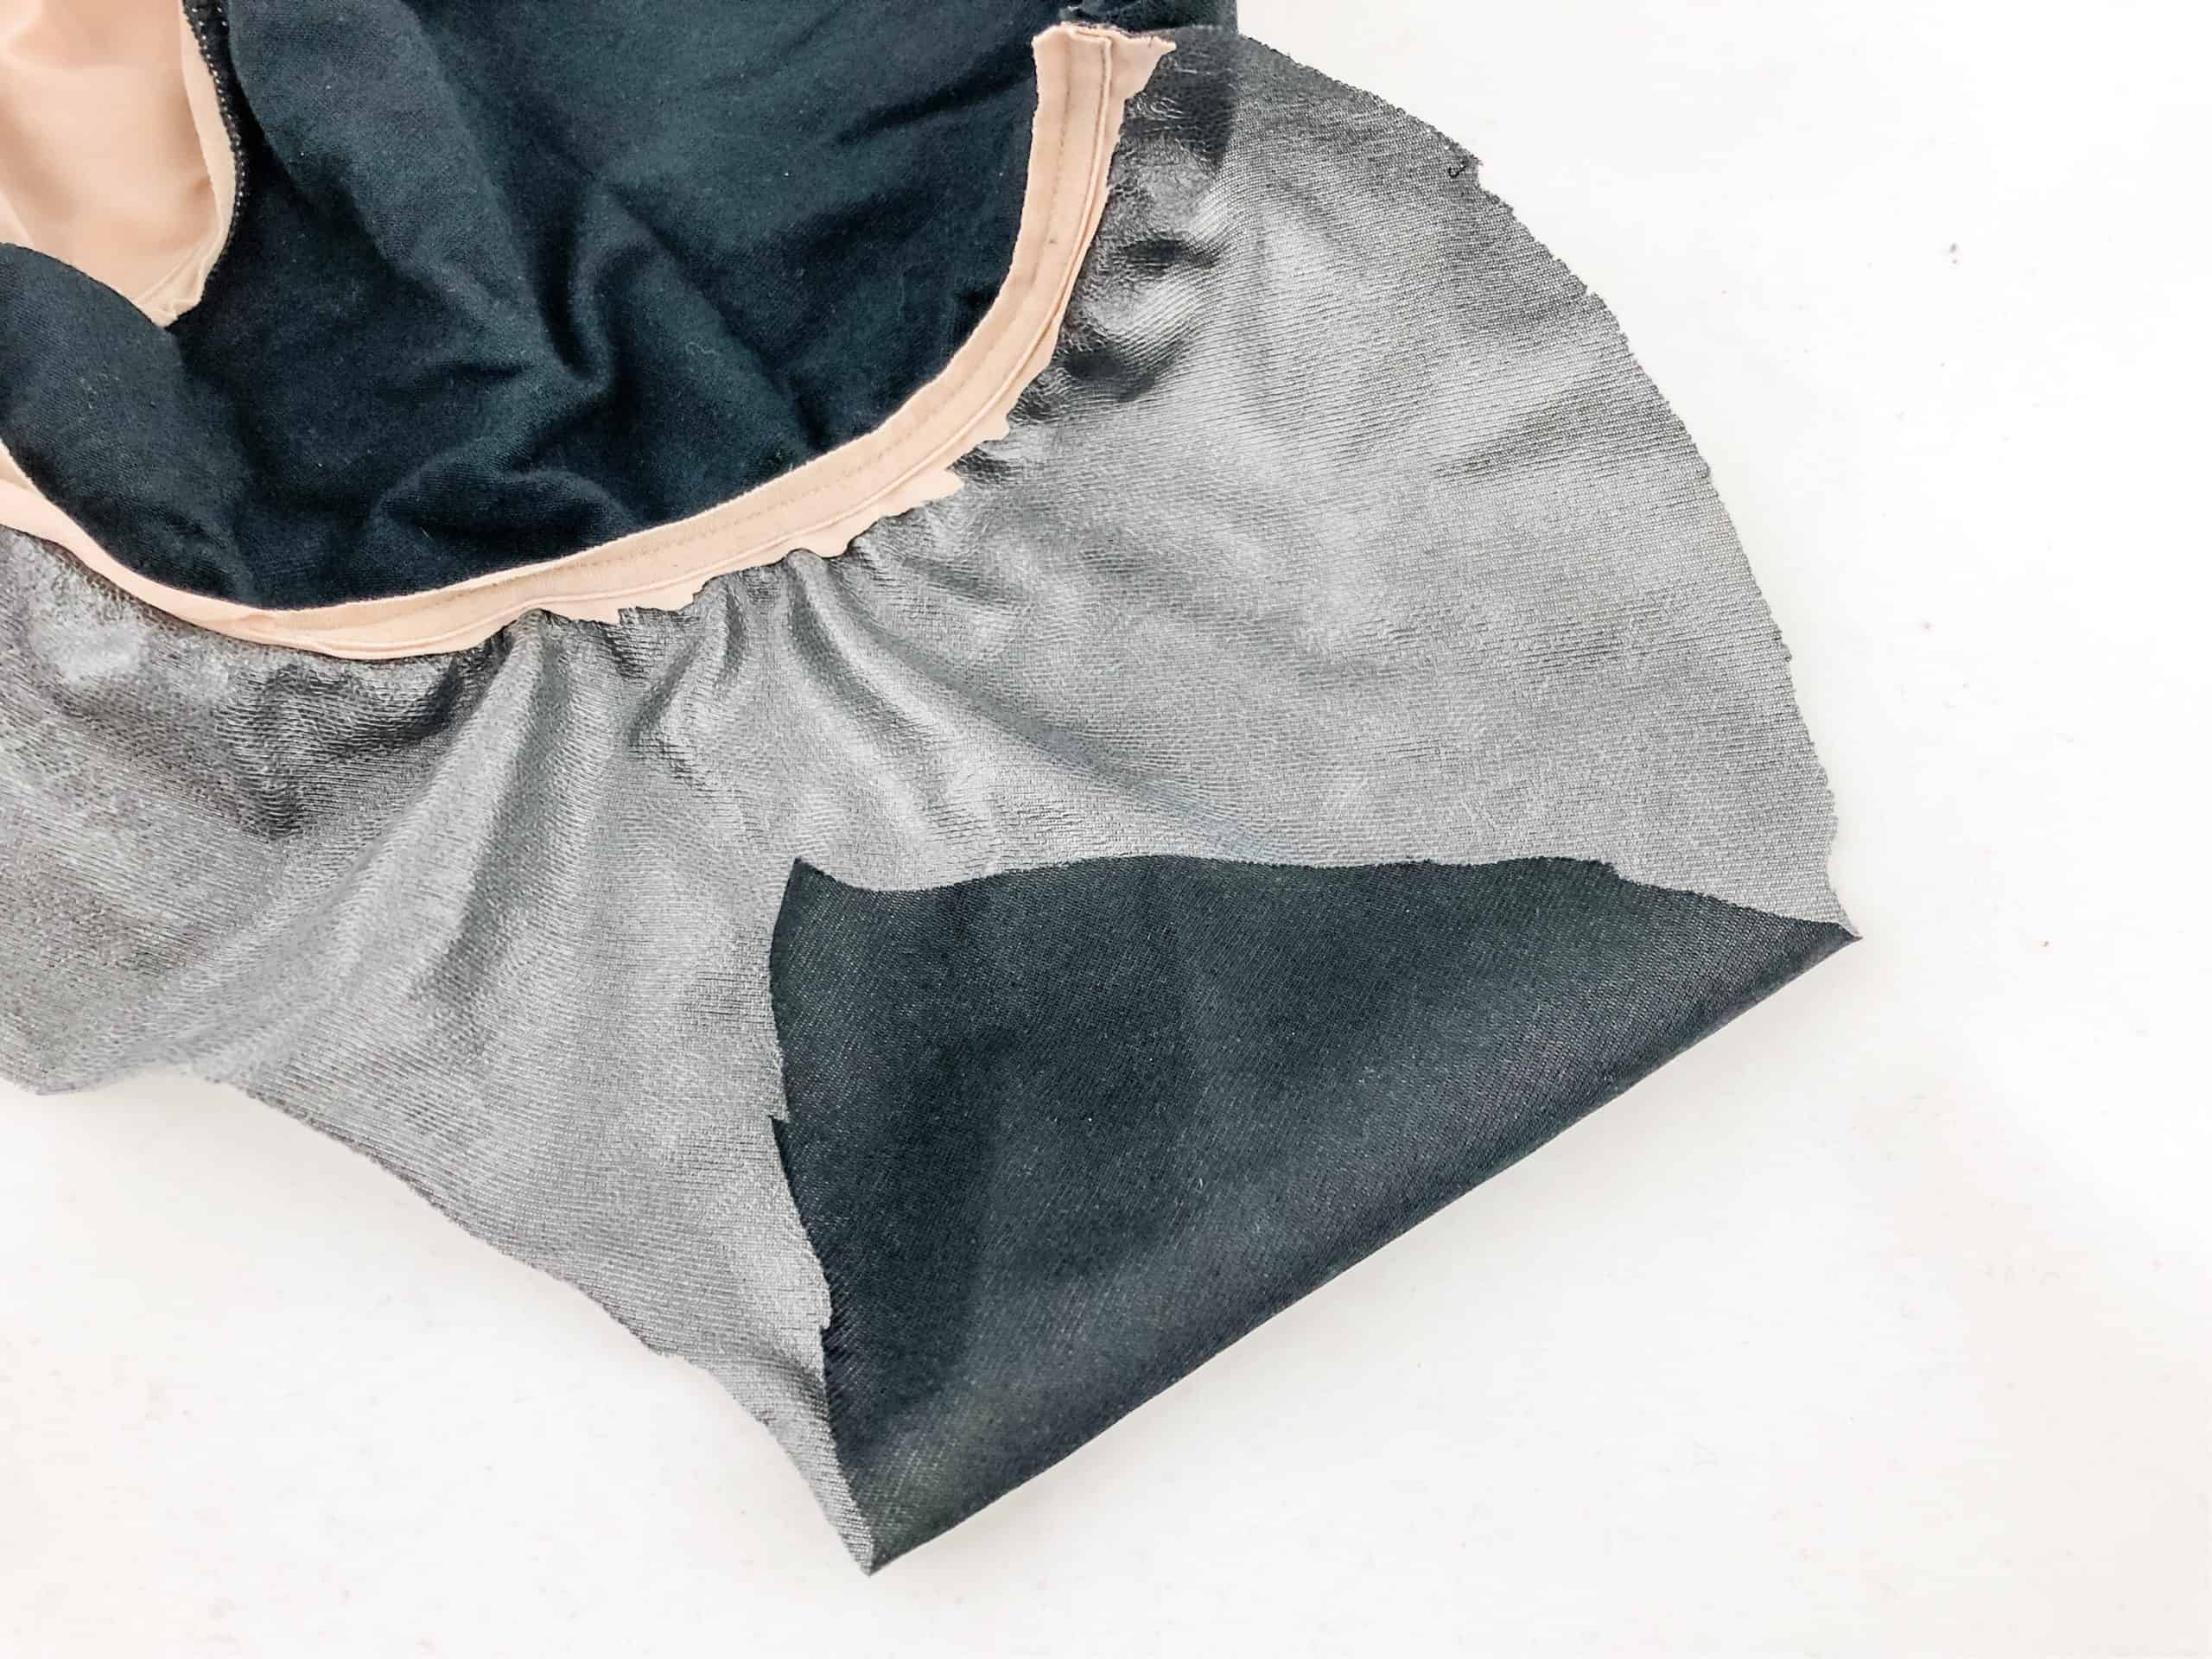 Thinx Period Panties with crotch cut out to expose gusset